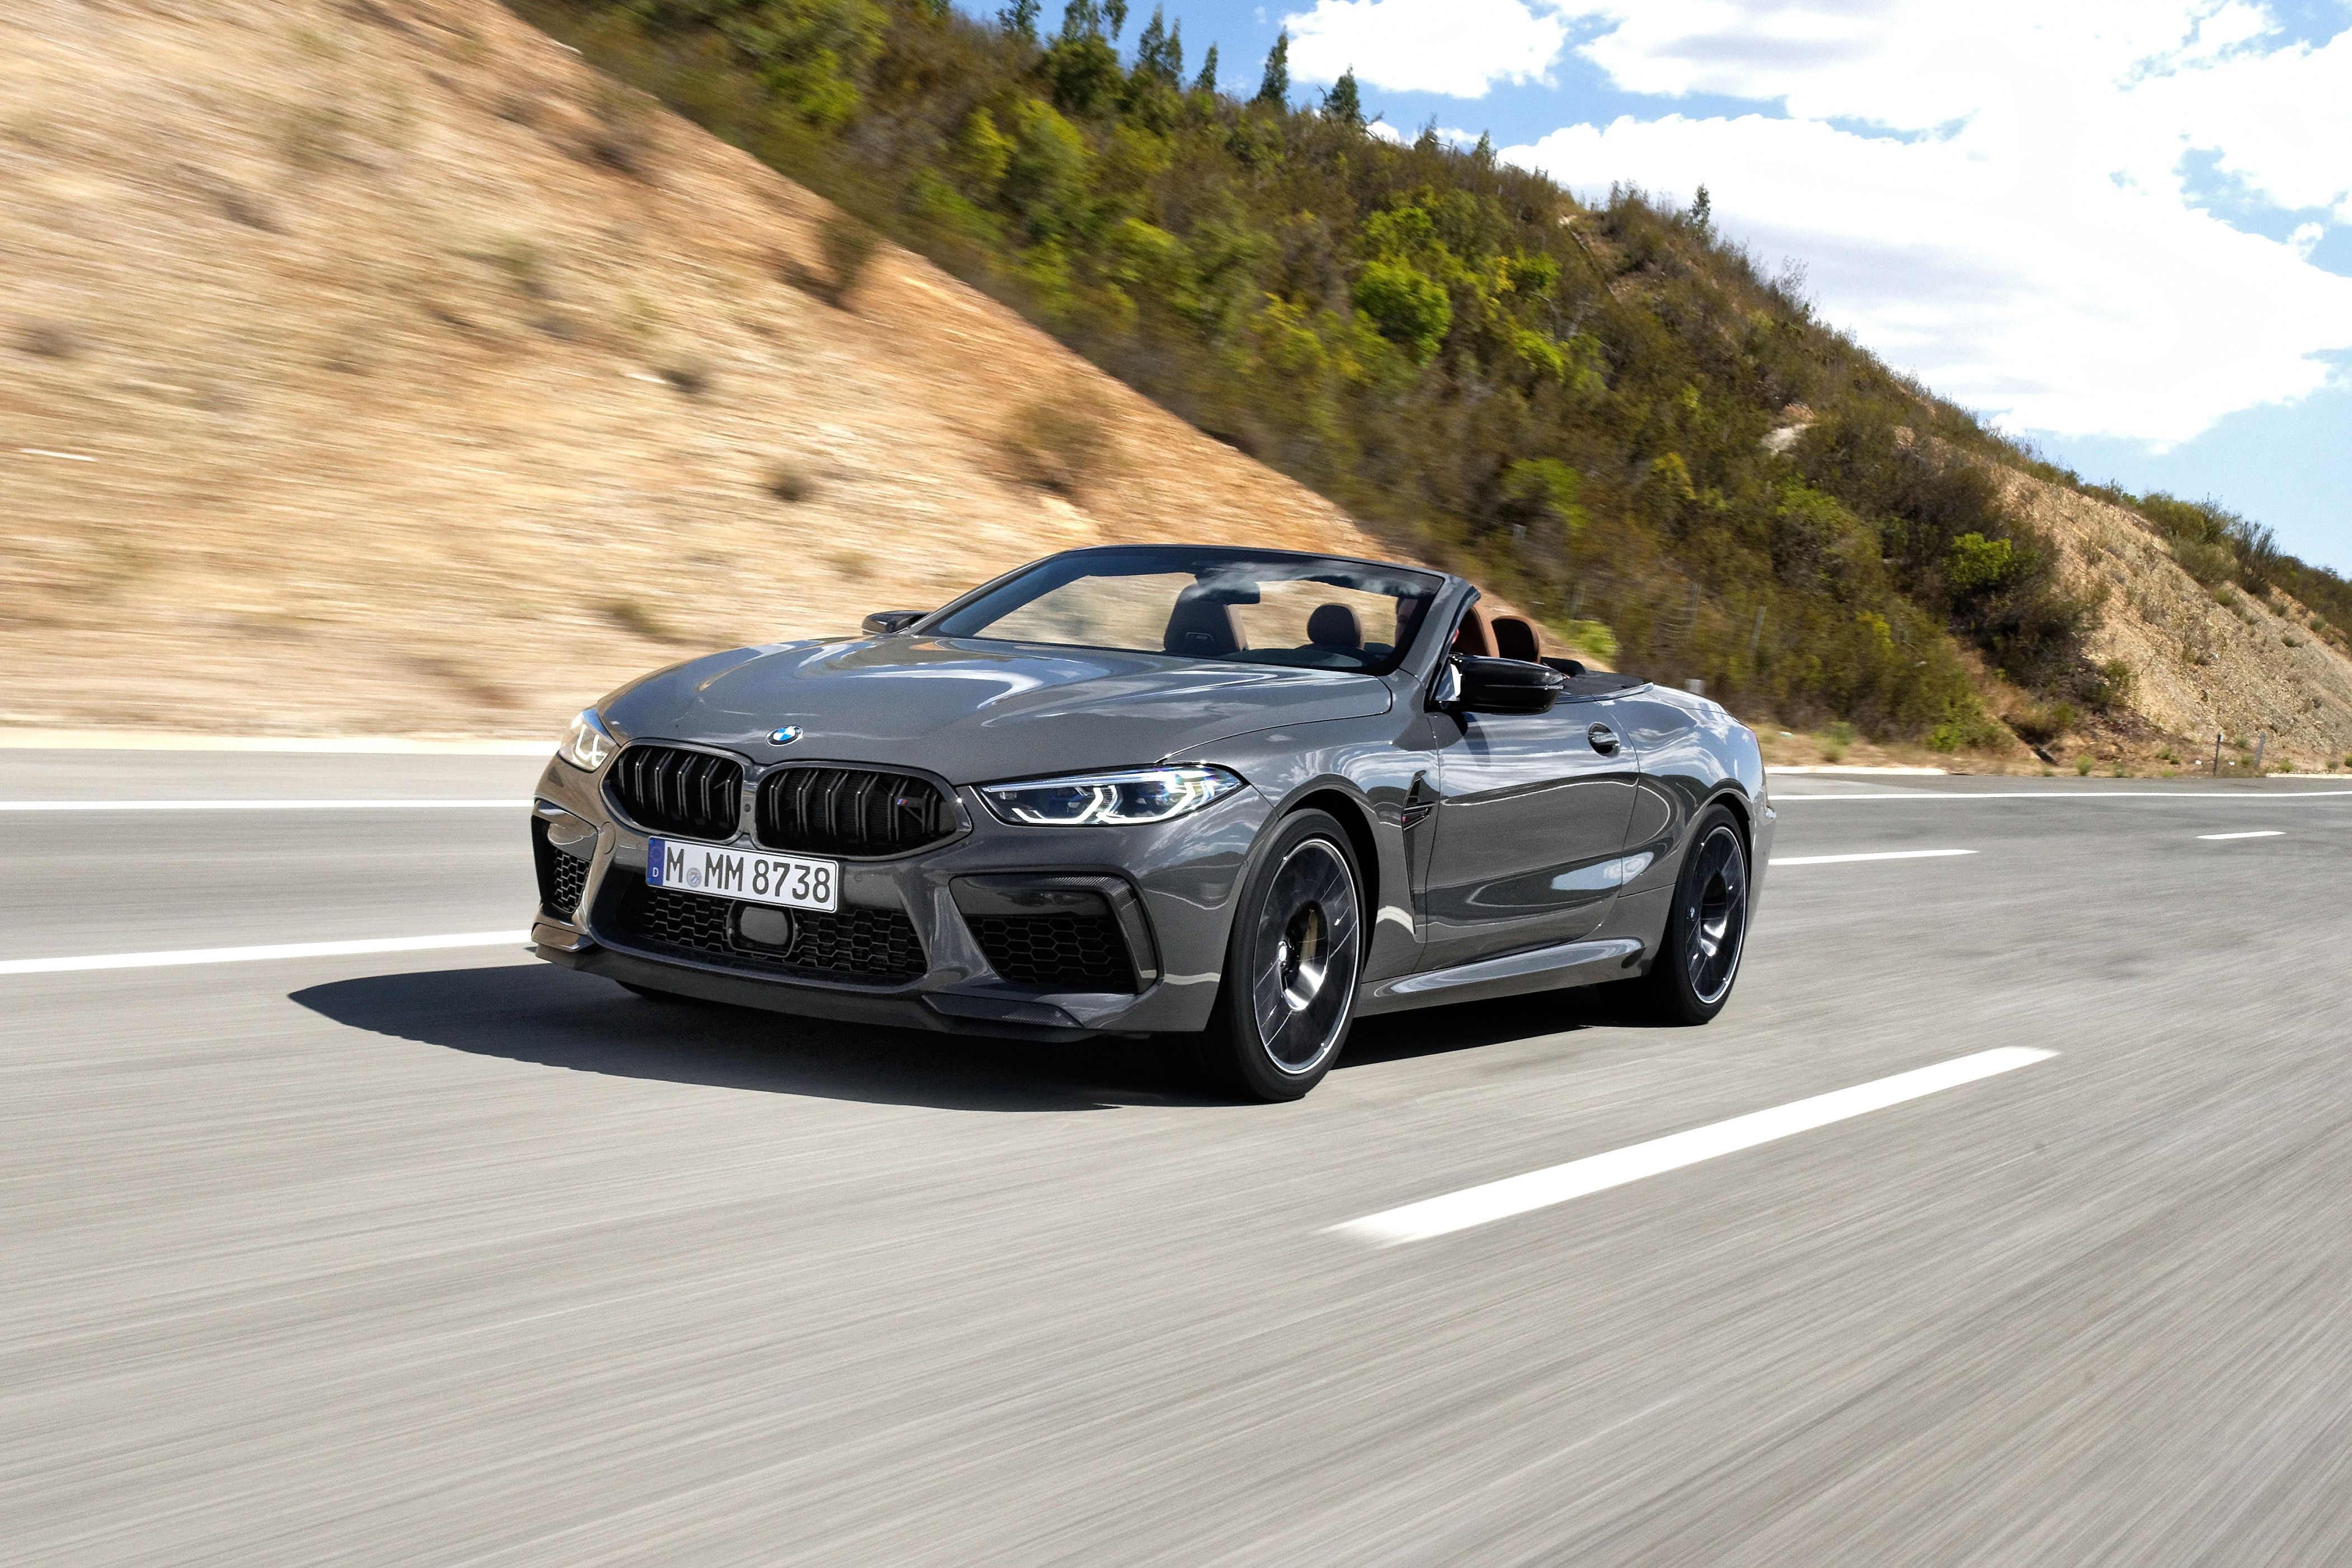 This engine is rated at 441 kw (591 hp) at 6,000 rpm and 750 n⋅m (553 lb⋅ft) in the standard m8 model, with peak power increasing to 460 kw (617 hp) at 6,000. 2020 Bmw M8 Coupe And Convertible Drive Well And They Re Fast As Hell